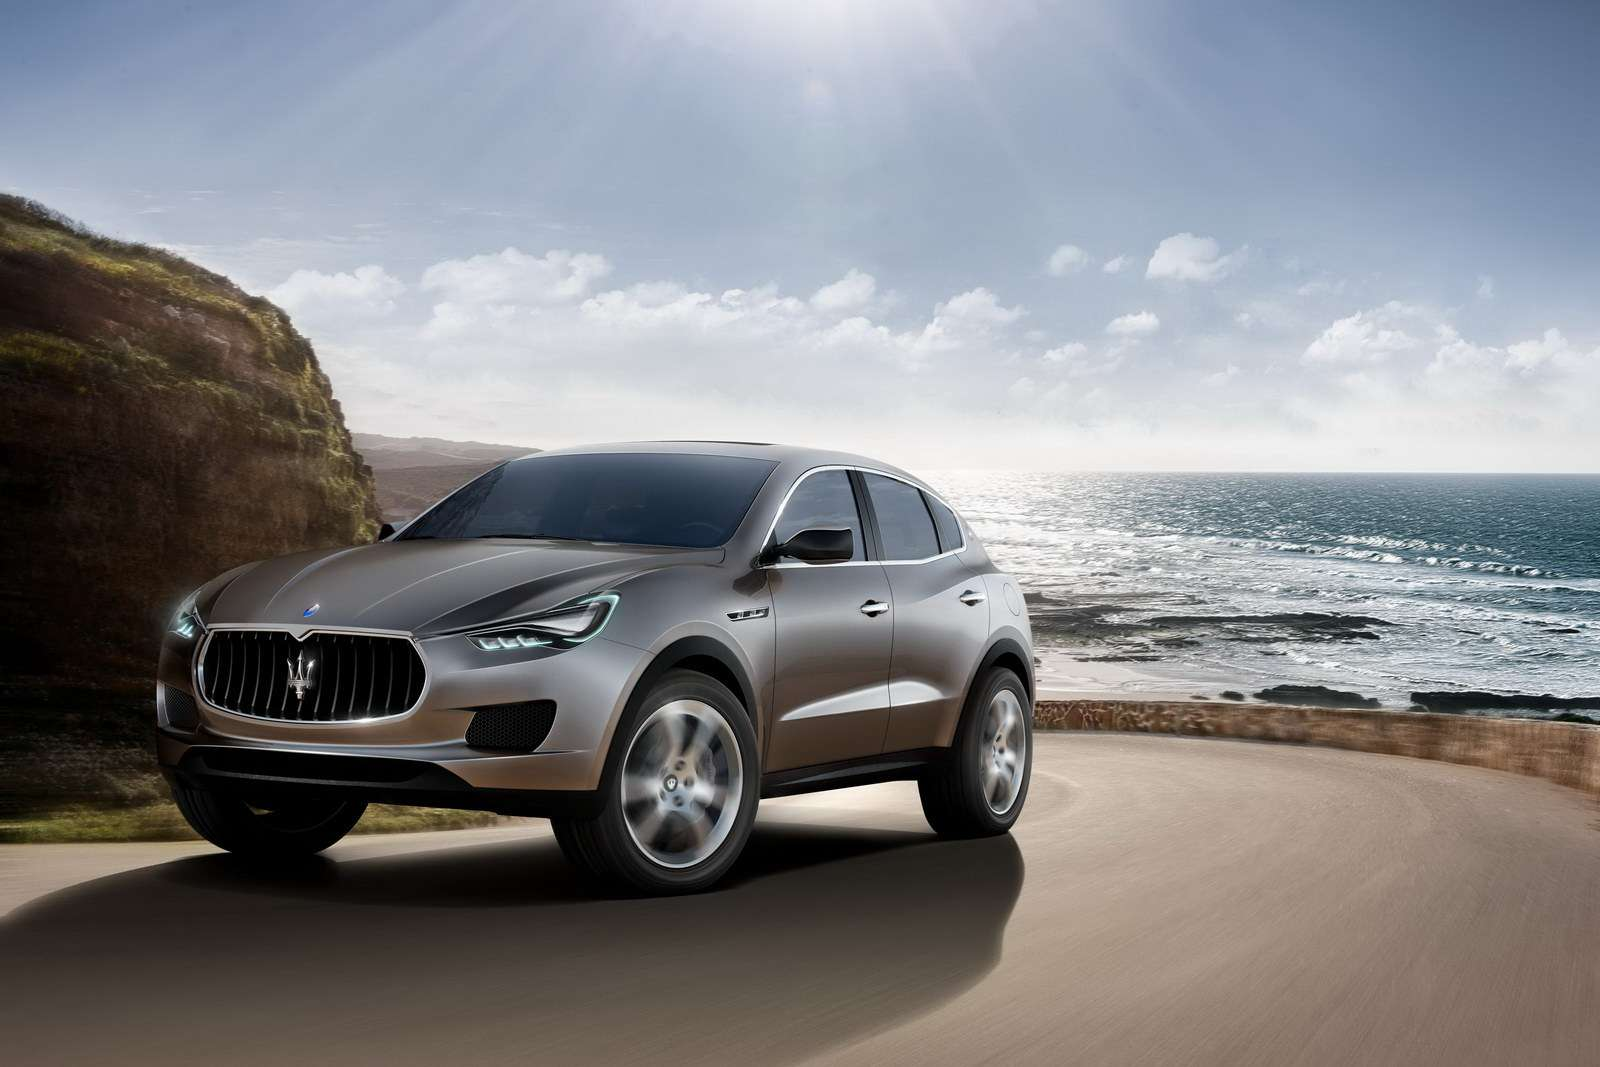 Maserati Kubang SUV first photo wrzesien 2011